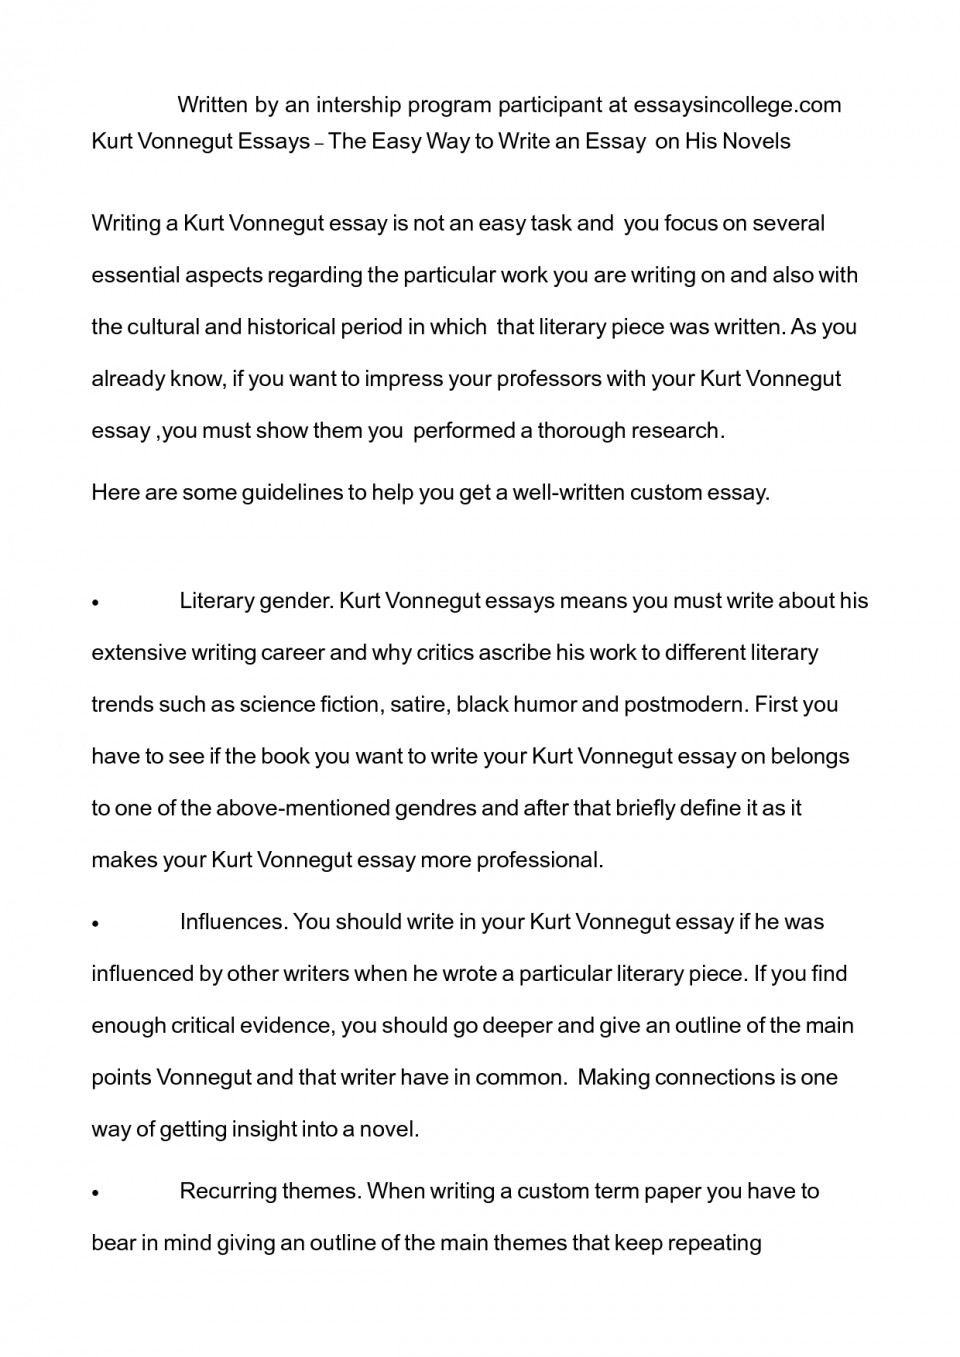 001 Easy Essay Writing Ujolpknqnj Marvelous Examples Ielts Tips Task 2 Topics 960